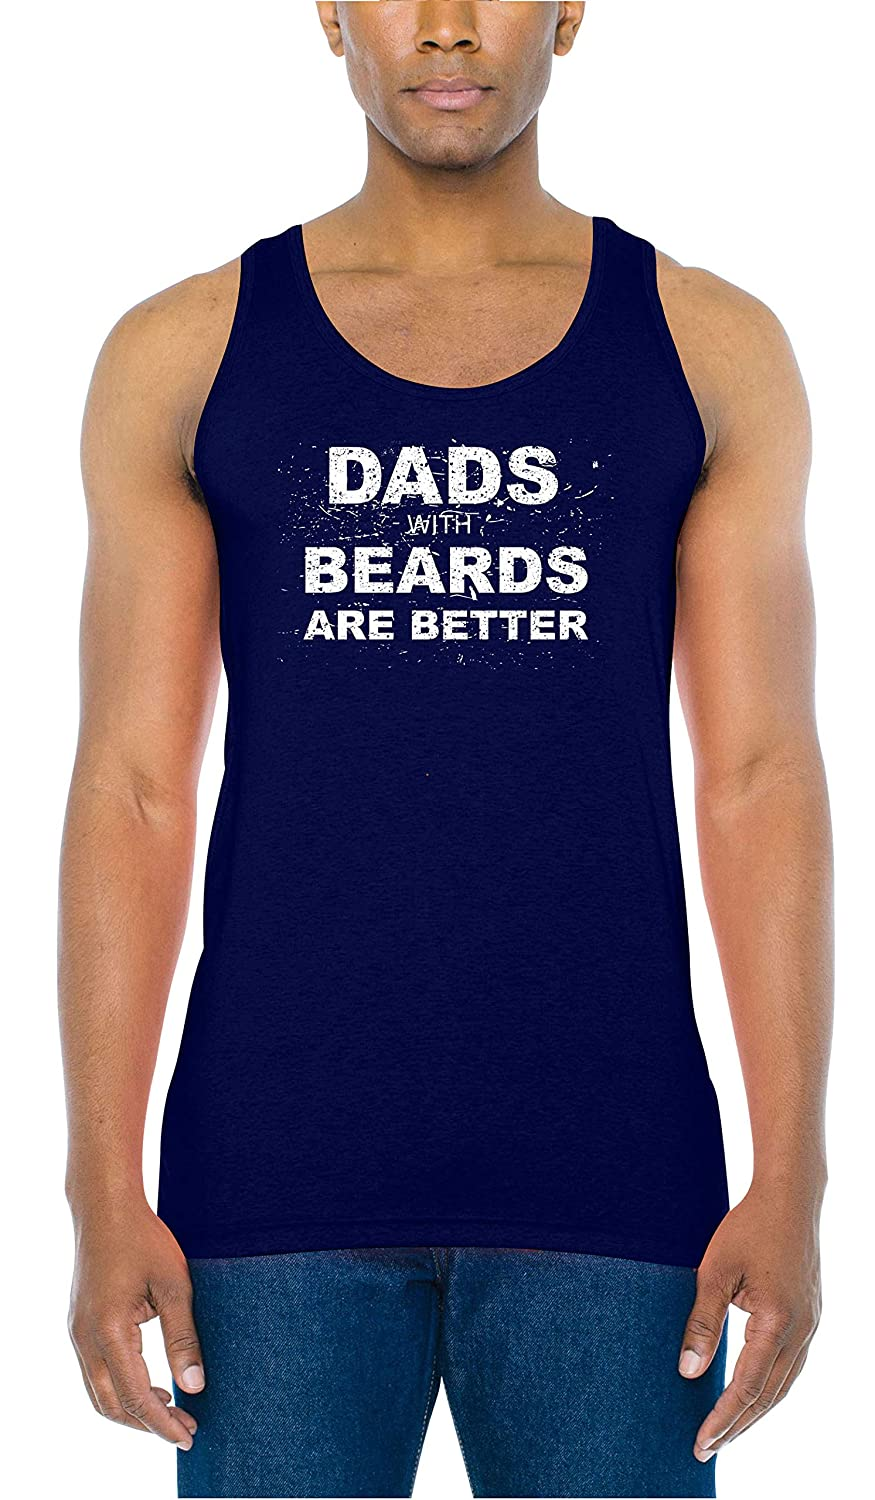 INKEEZY Mens Dads with Beards are Better Tank Top